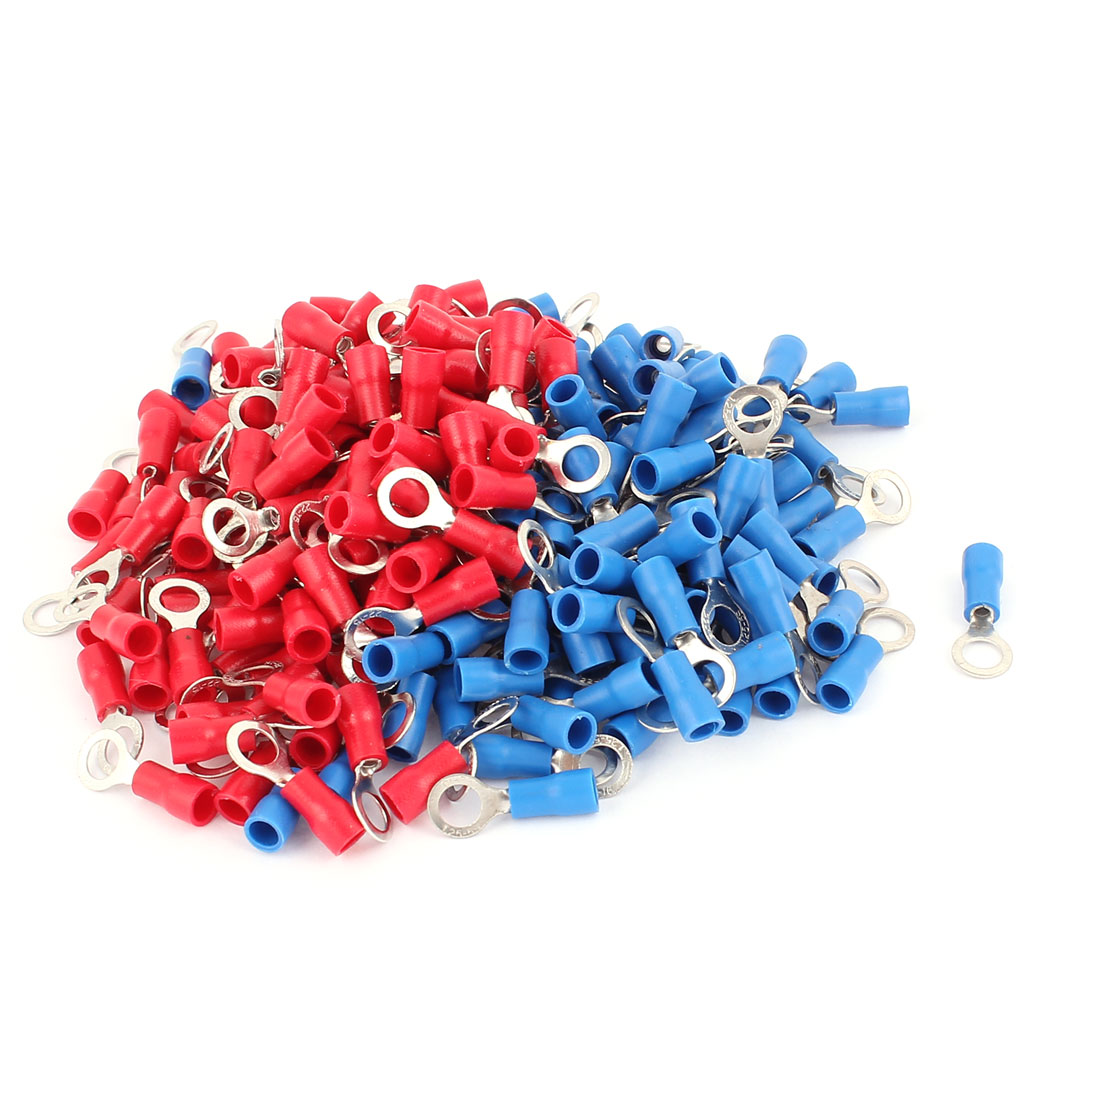 216 Pcs RV1.25-5 AWG 22-16 Red and Blue Sleeve Pre Insulated Ring Terminals Connector